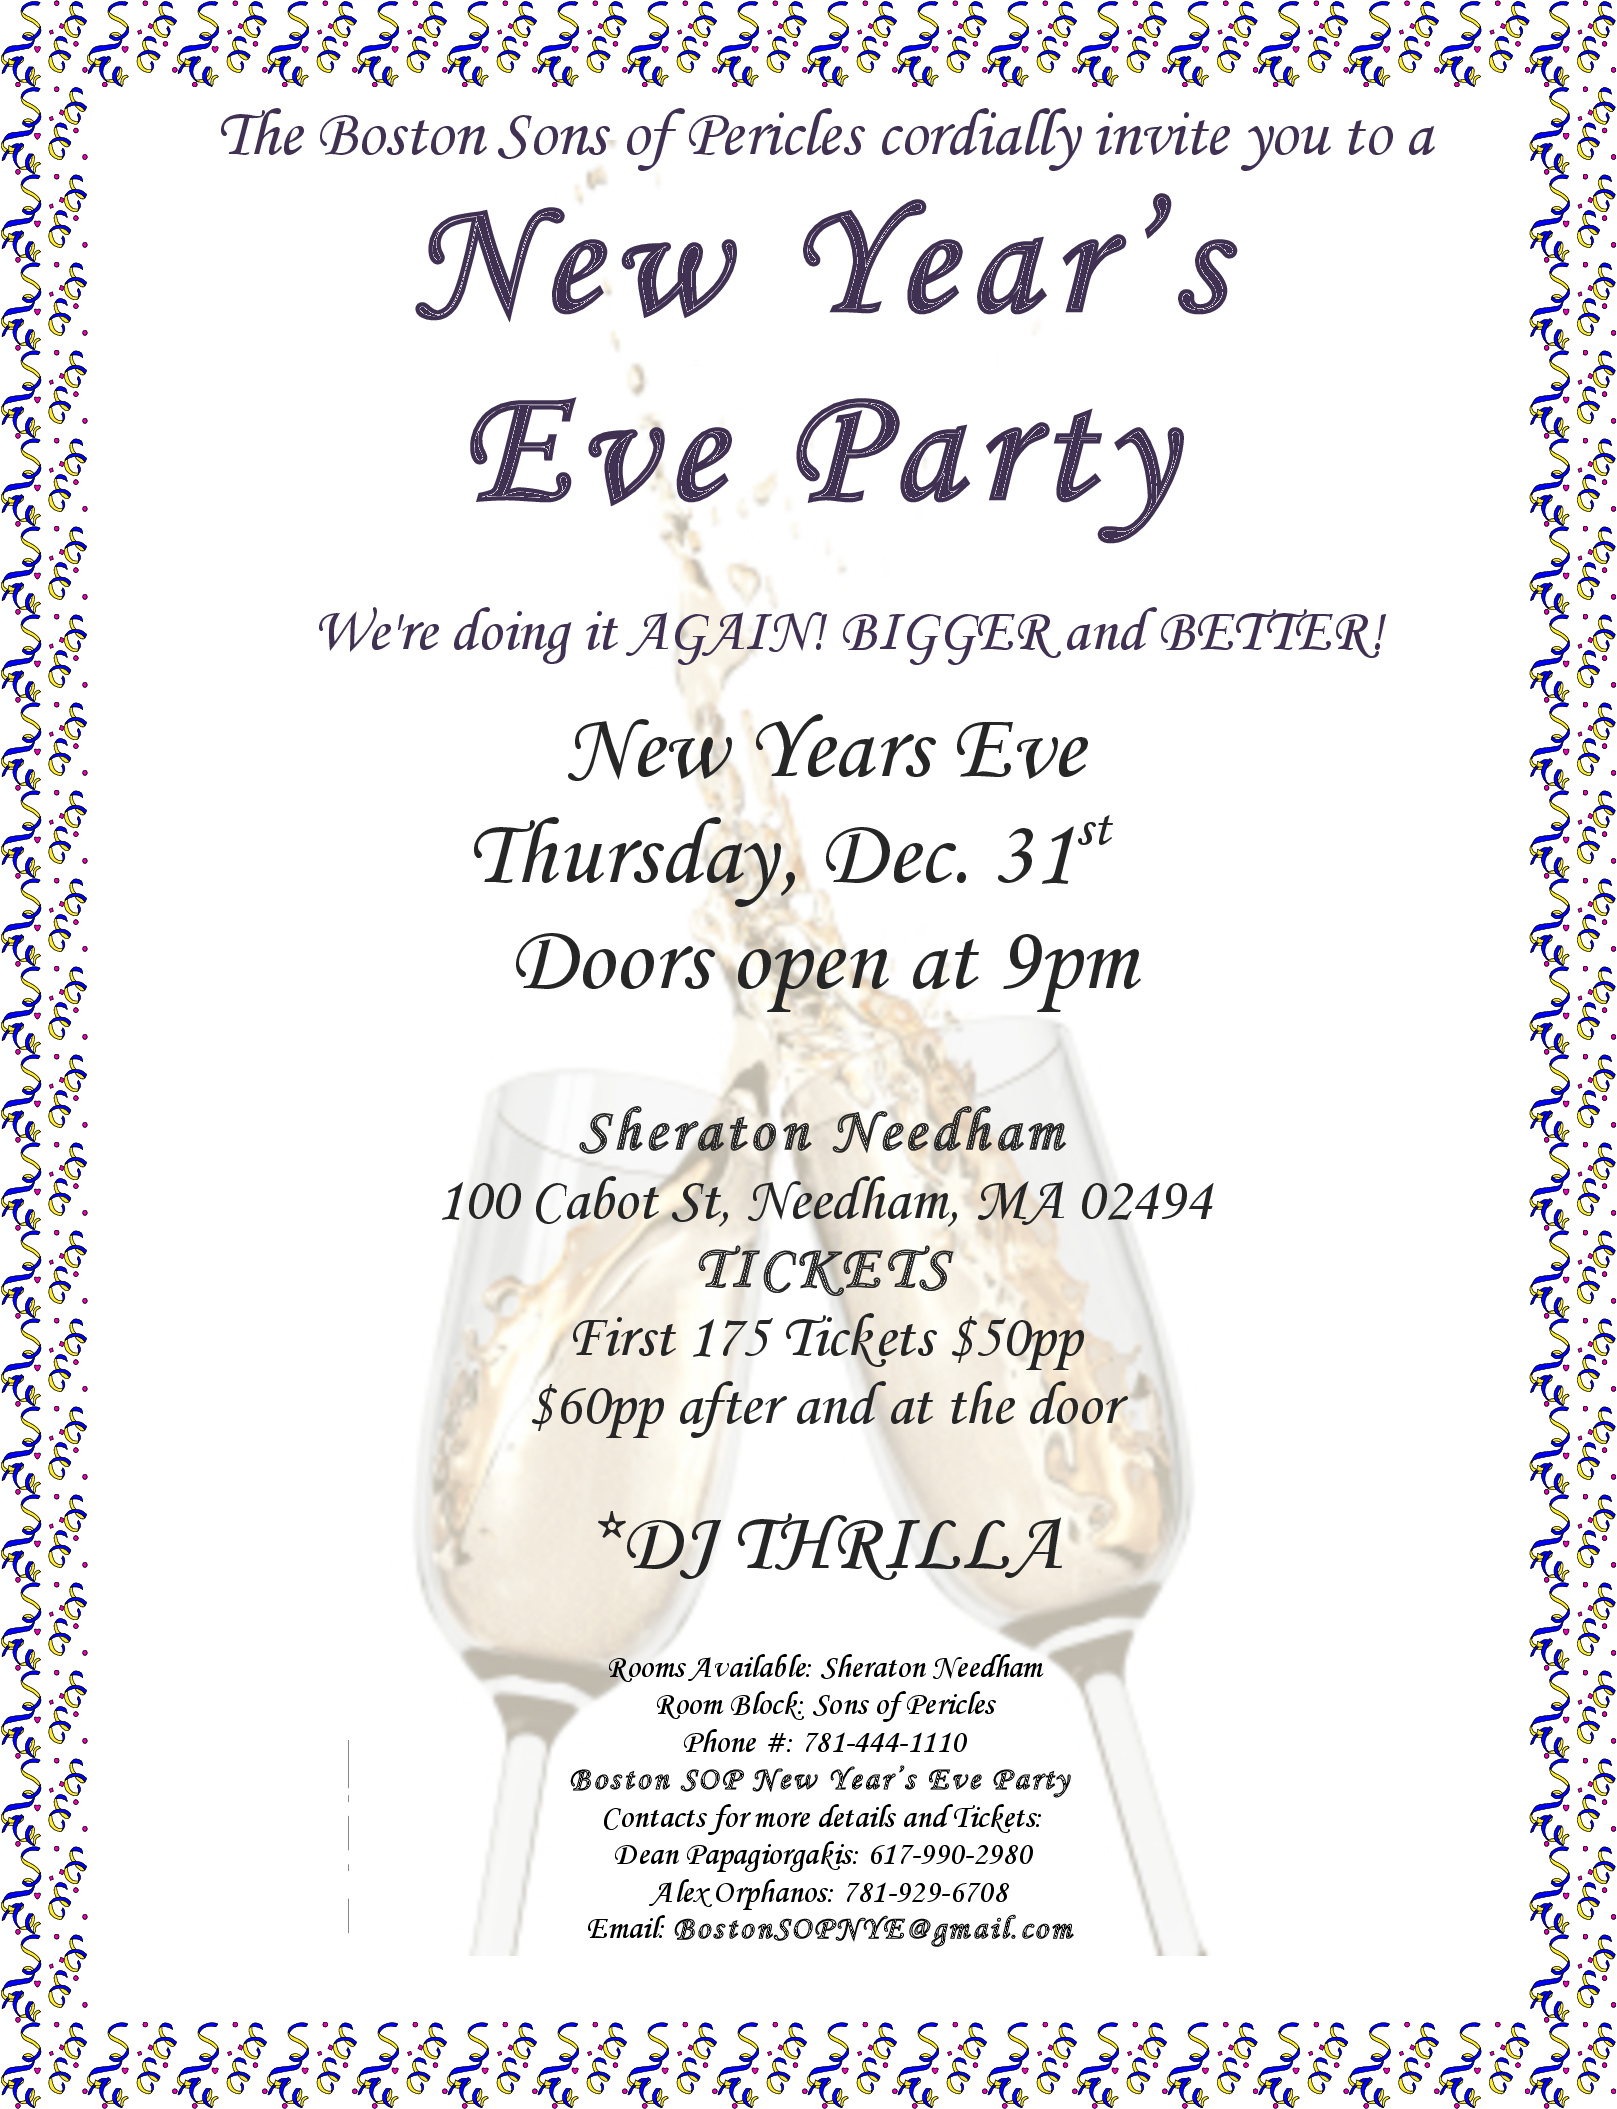 Annual Boston Sons of Pericles New Years Eve Party